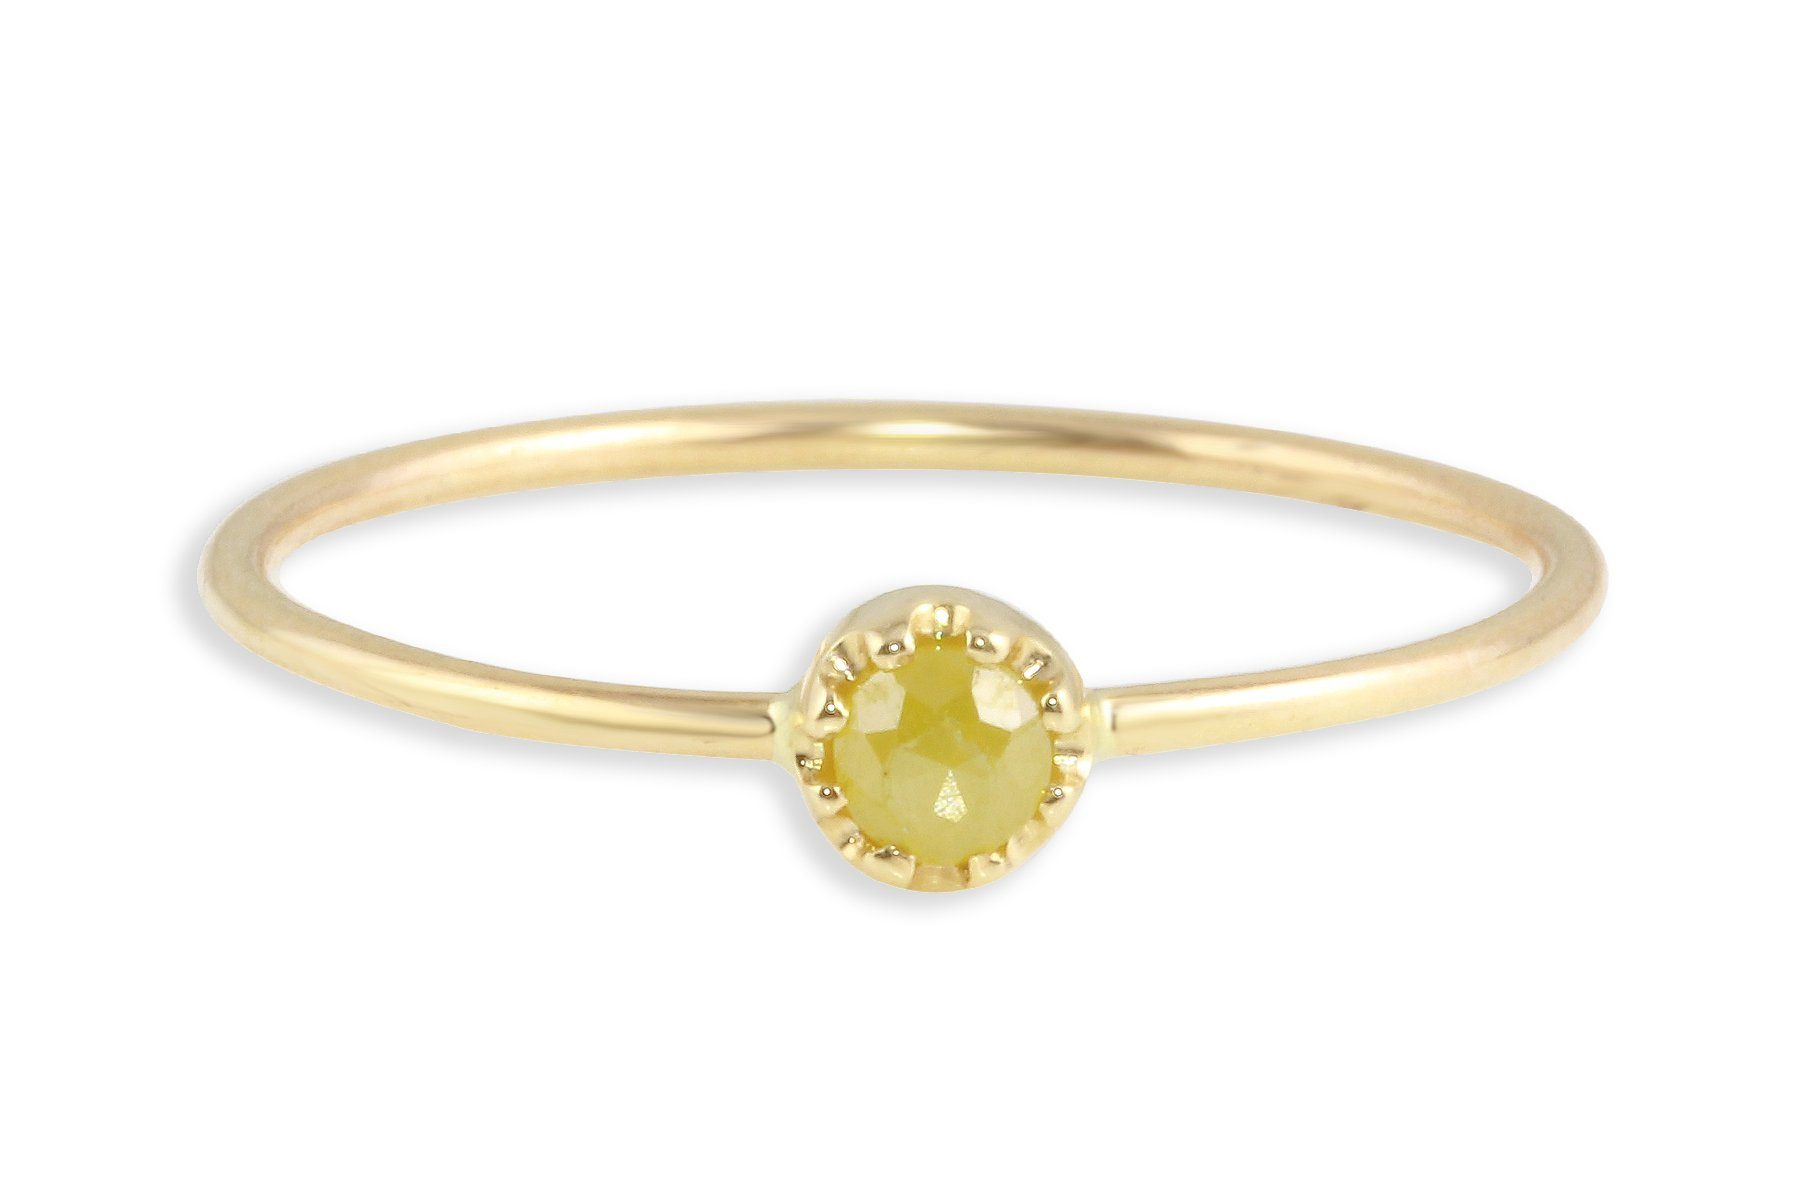 14K gold and yellow rosecut diamond stacking ring - Amanda K Lockrow